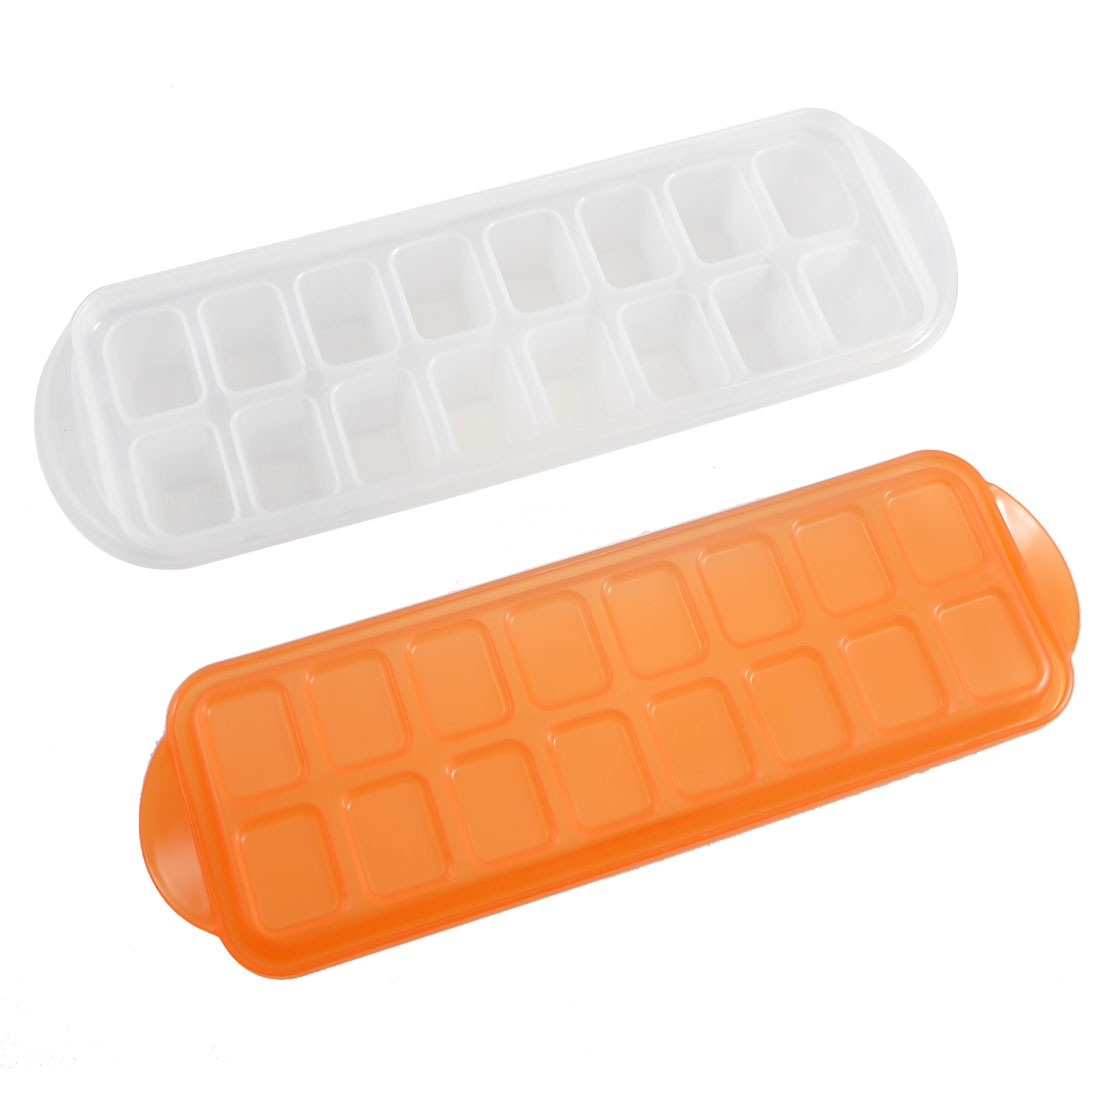 16-Compartment White Plastic Pudding Mould Ice Cube Mold w Orange Red Cover